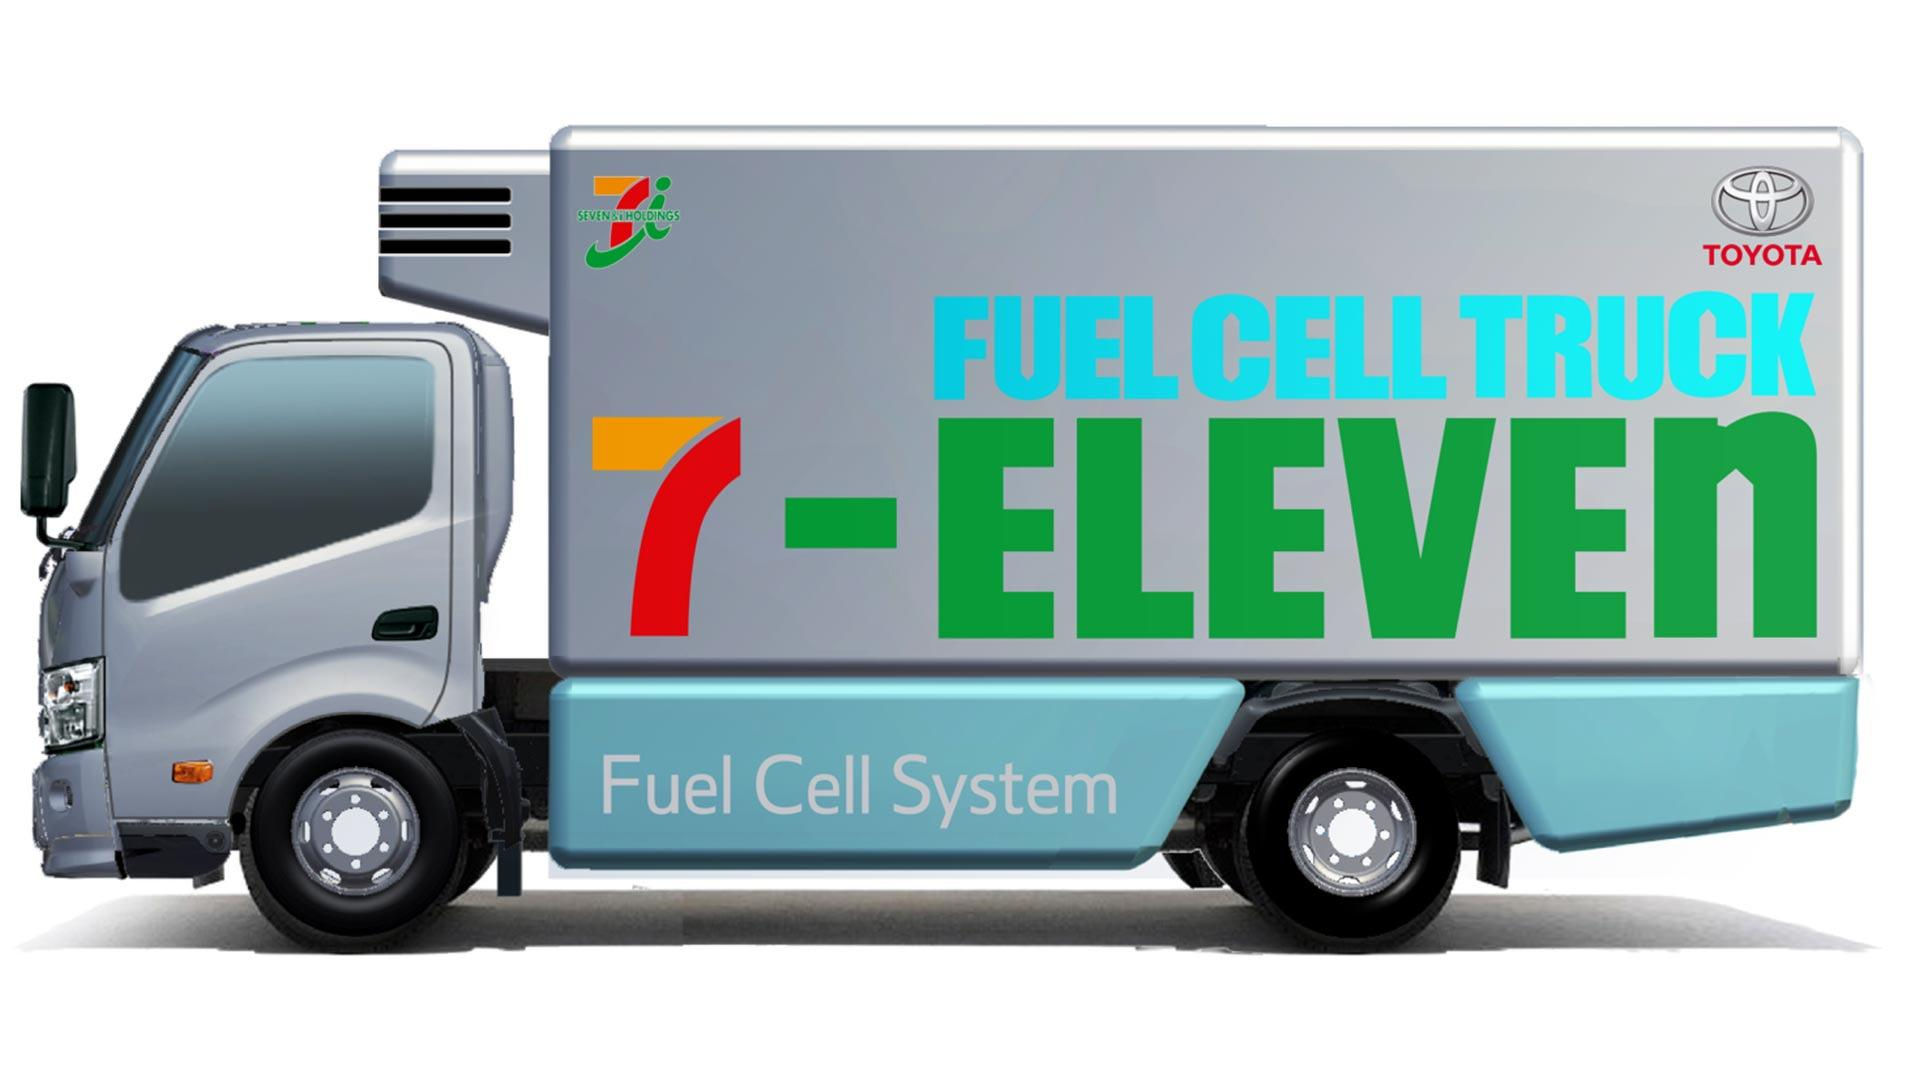 Toyota 7 Eleven Partner On Hydrogen Fuel Cell Truck Study